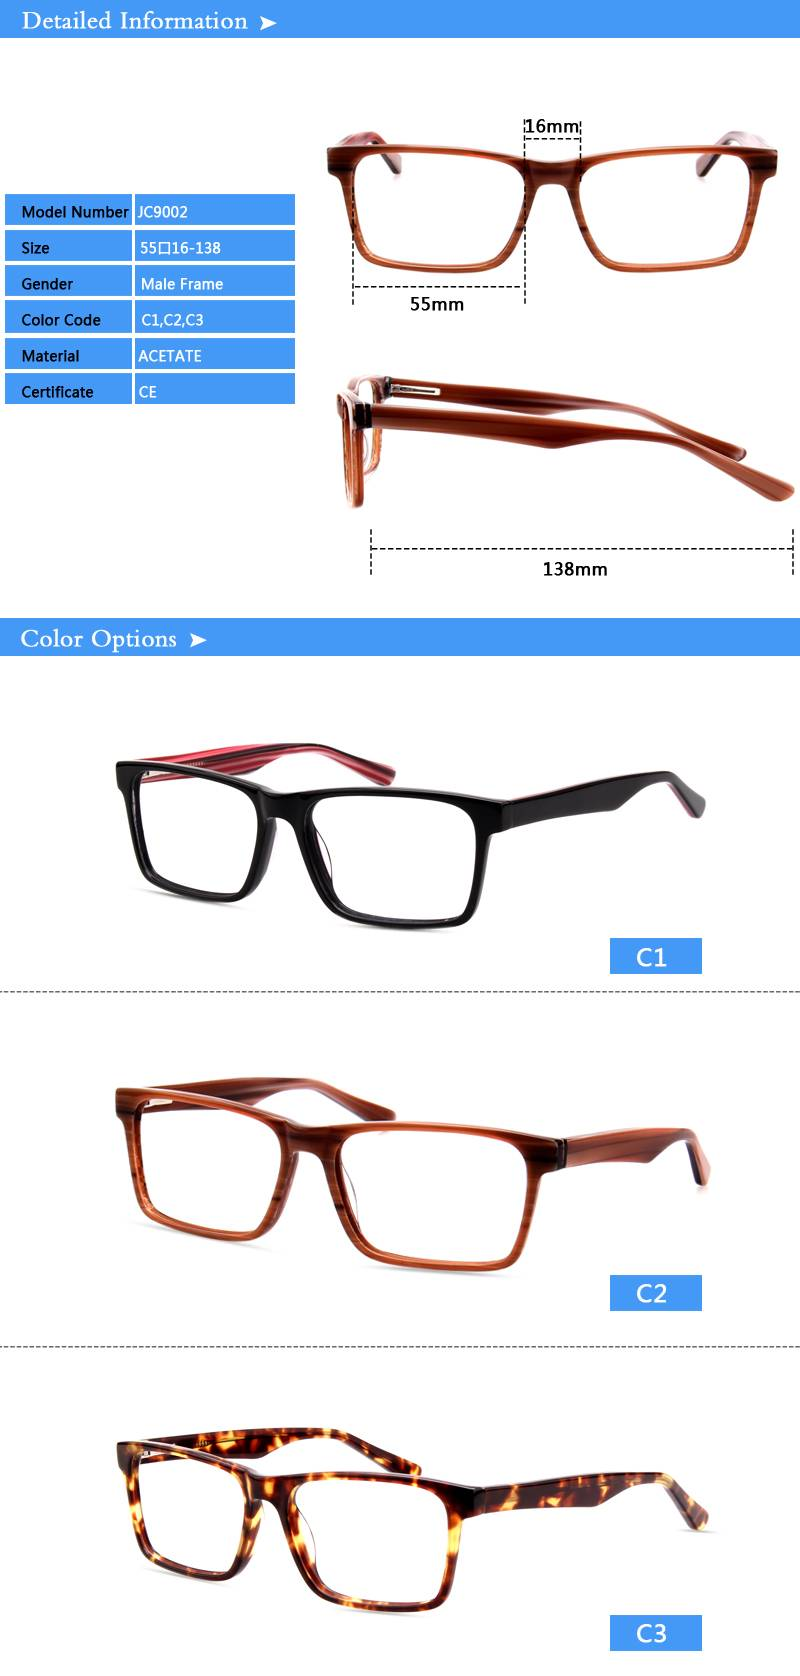 Fashion design acetate eyewear optical frame JC9002 ready in stock